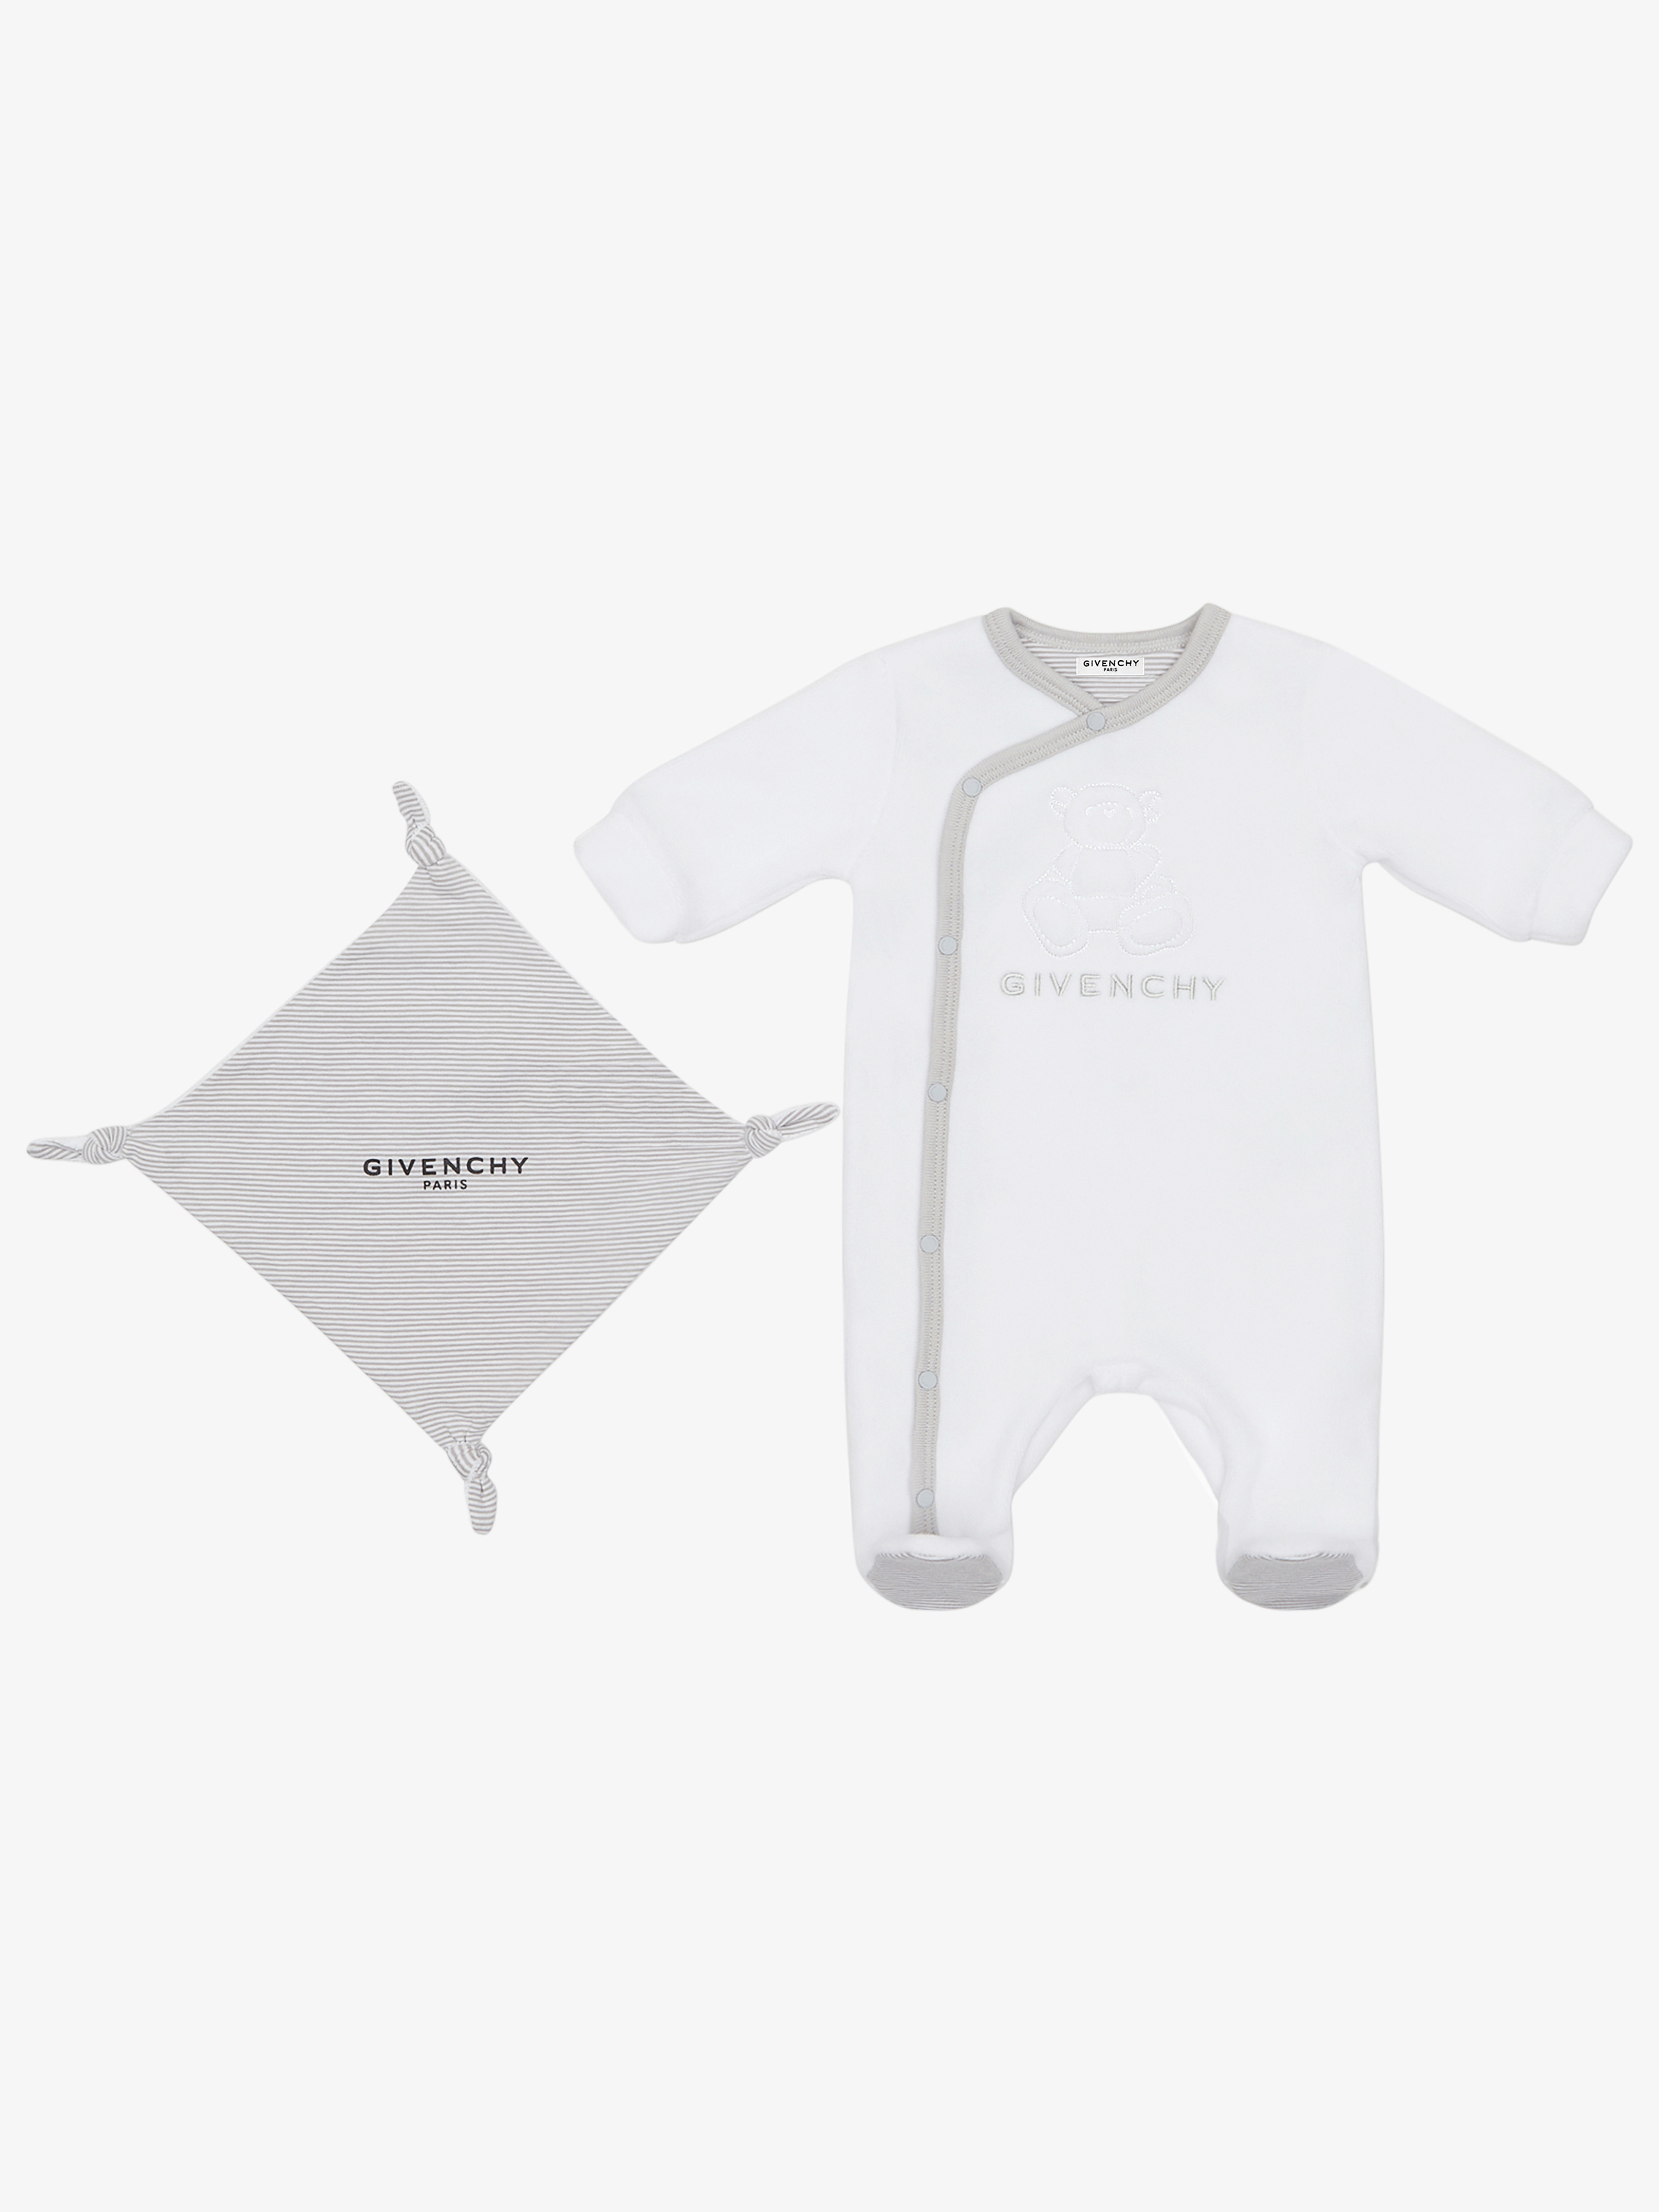 GIVENCHY baby gift set